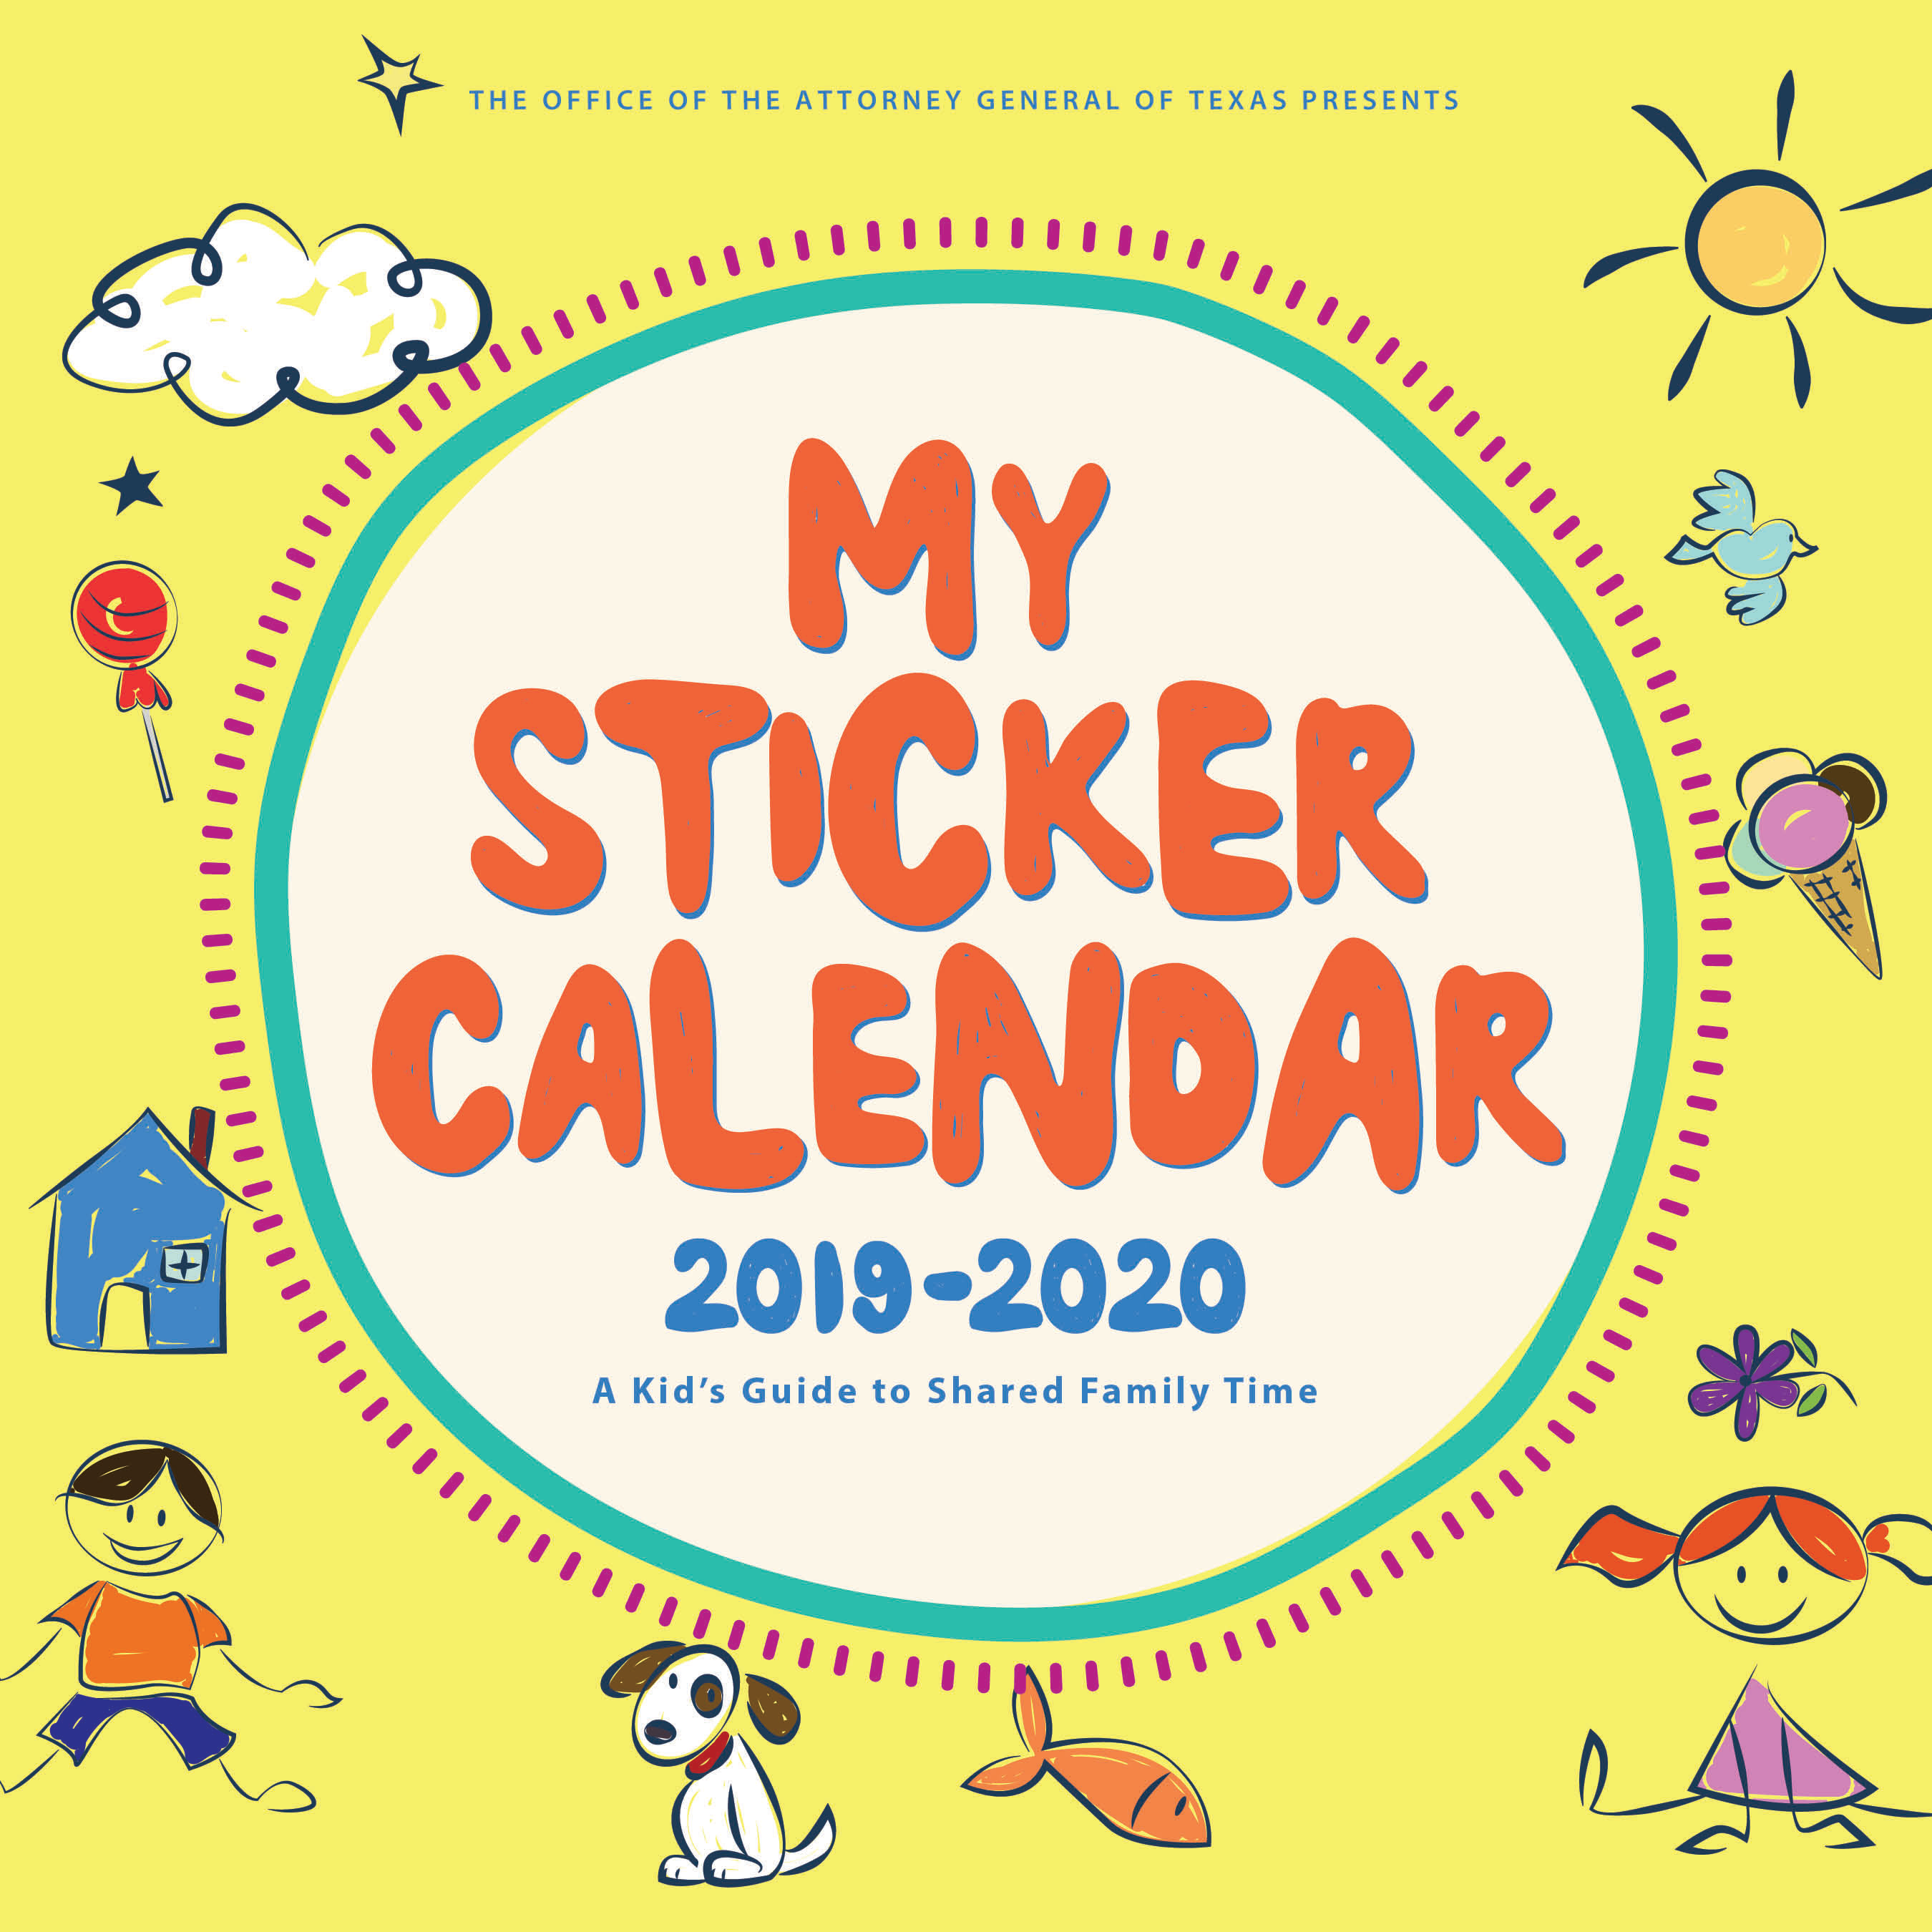 My Sticker Calendar | Office Of The Attorney General pertaining to Attorney General Texas Calender